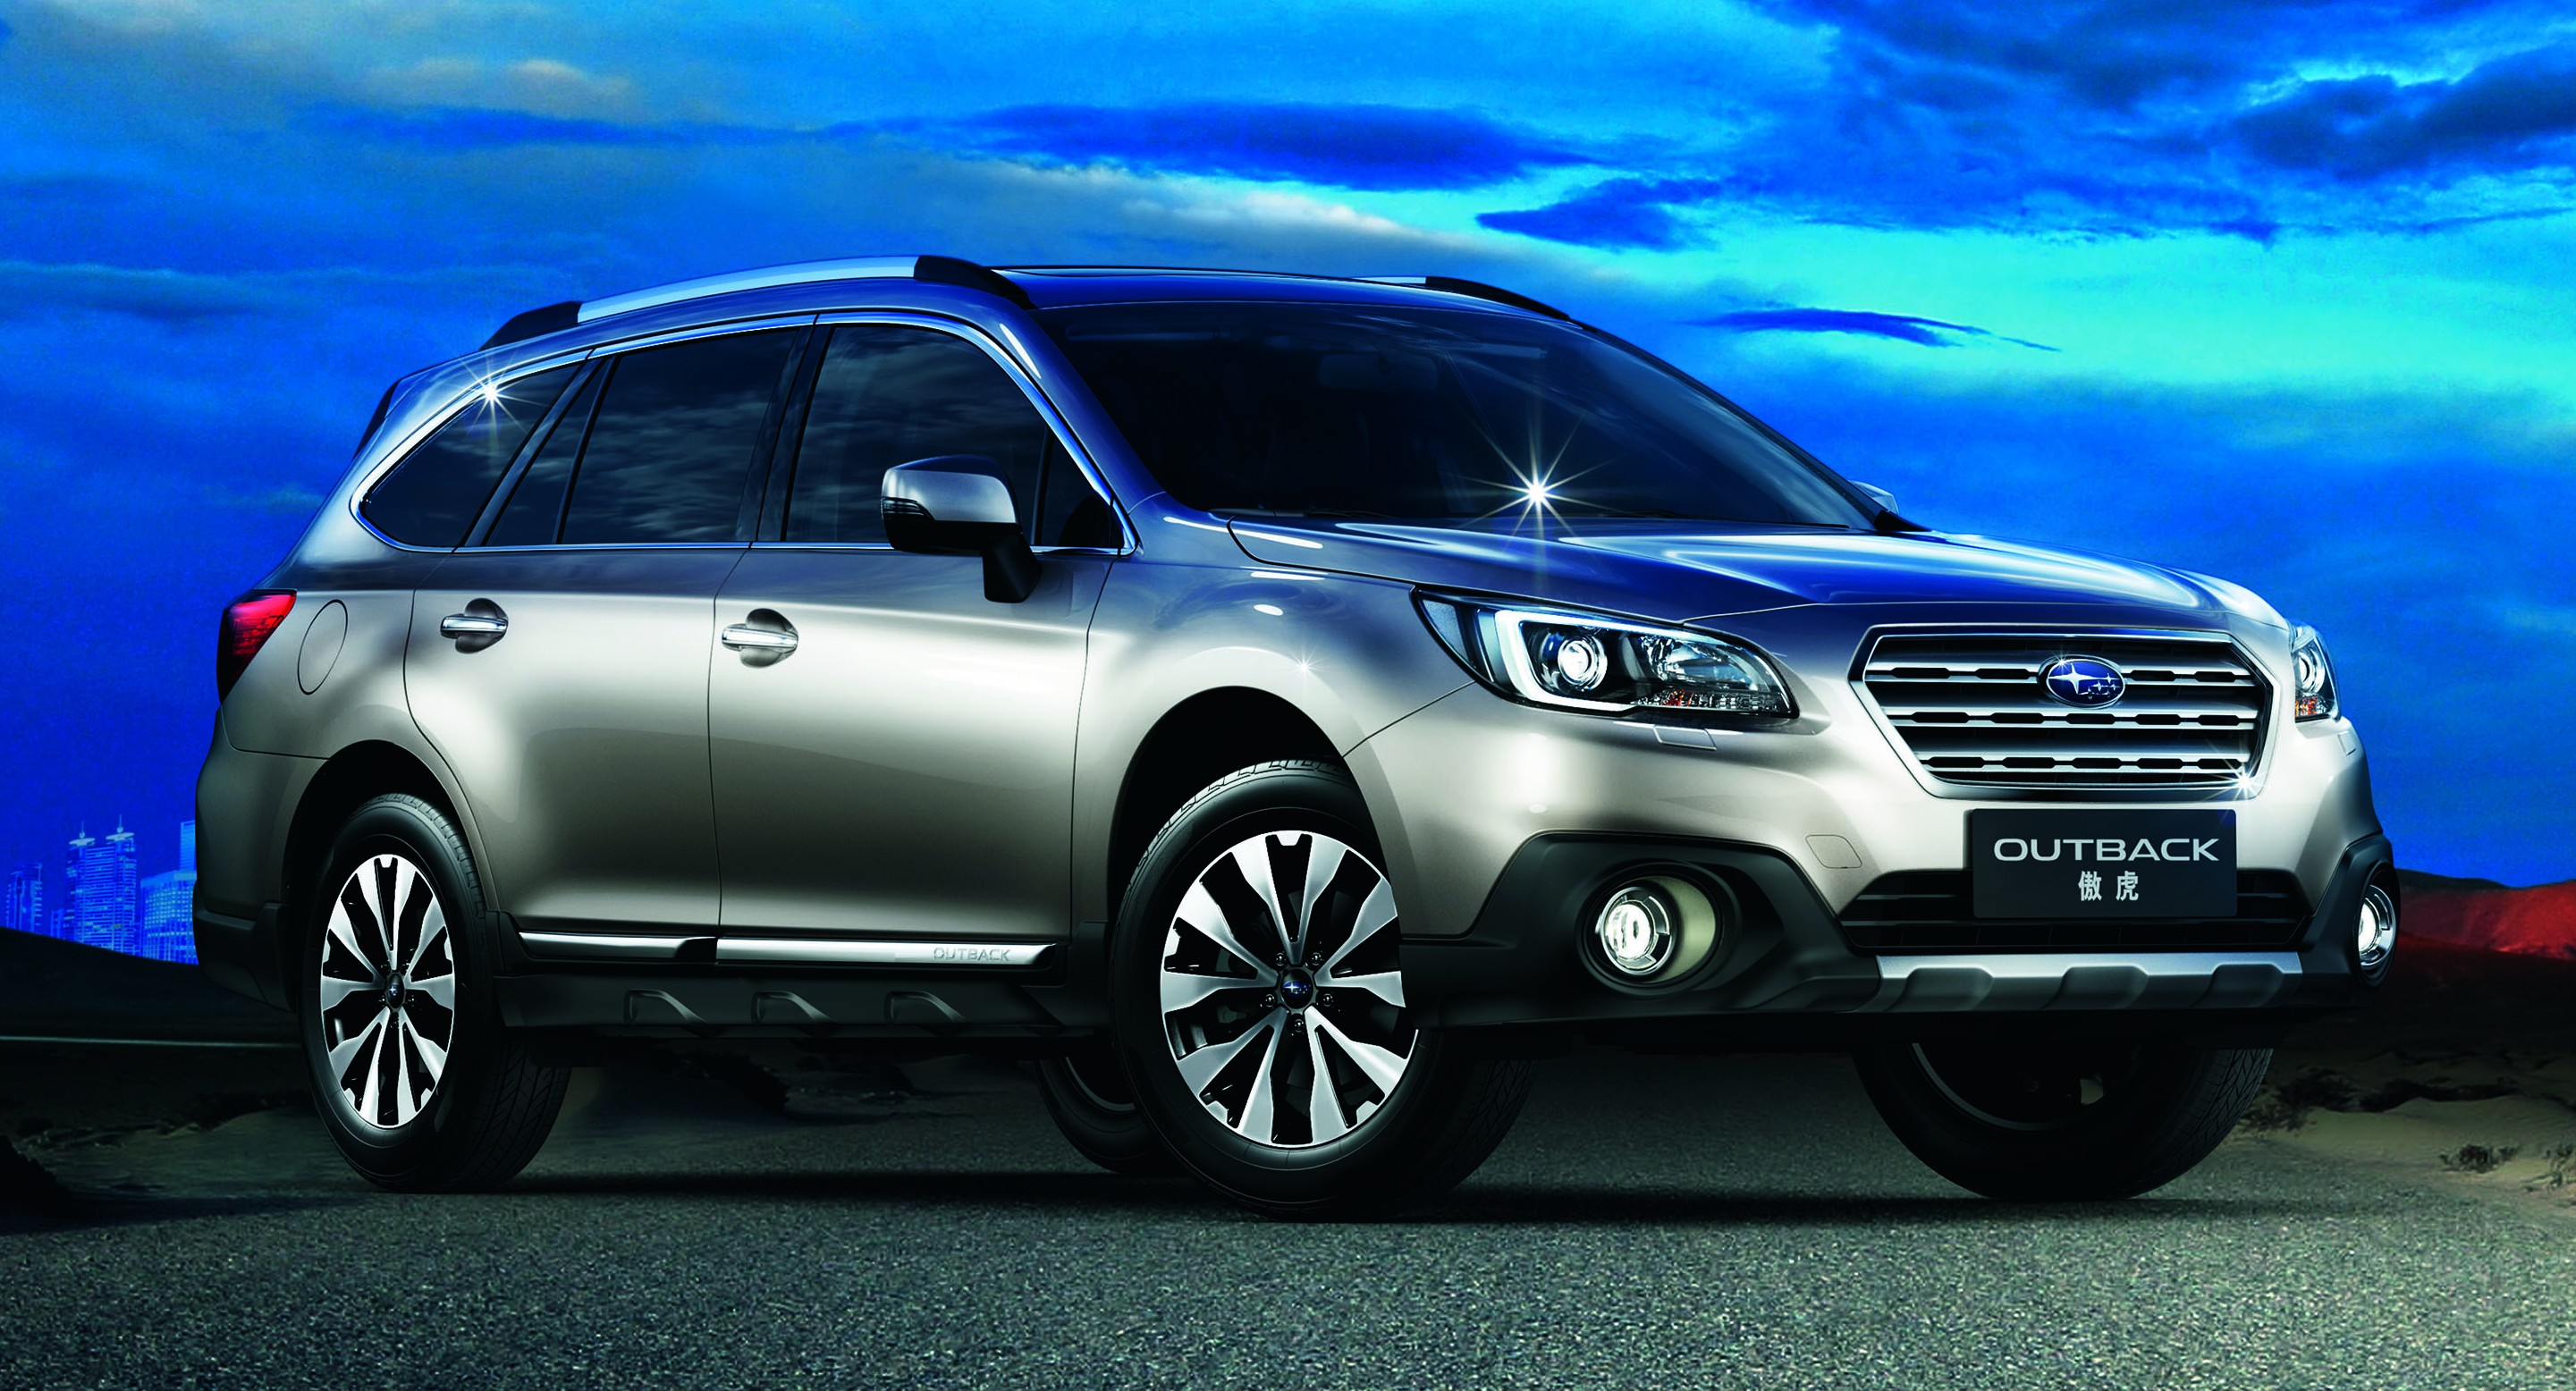 new subaru outback for china to debut at guangzhou. Black Bedroom Furniture Sets. Home Design Ideas